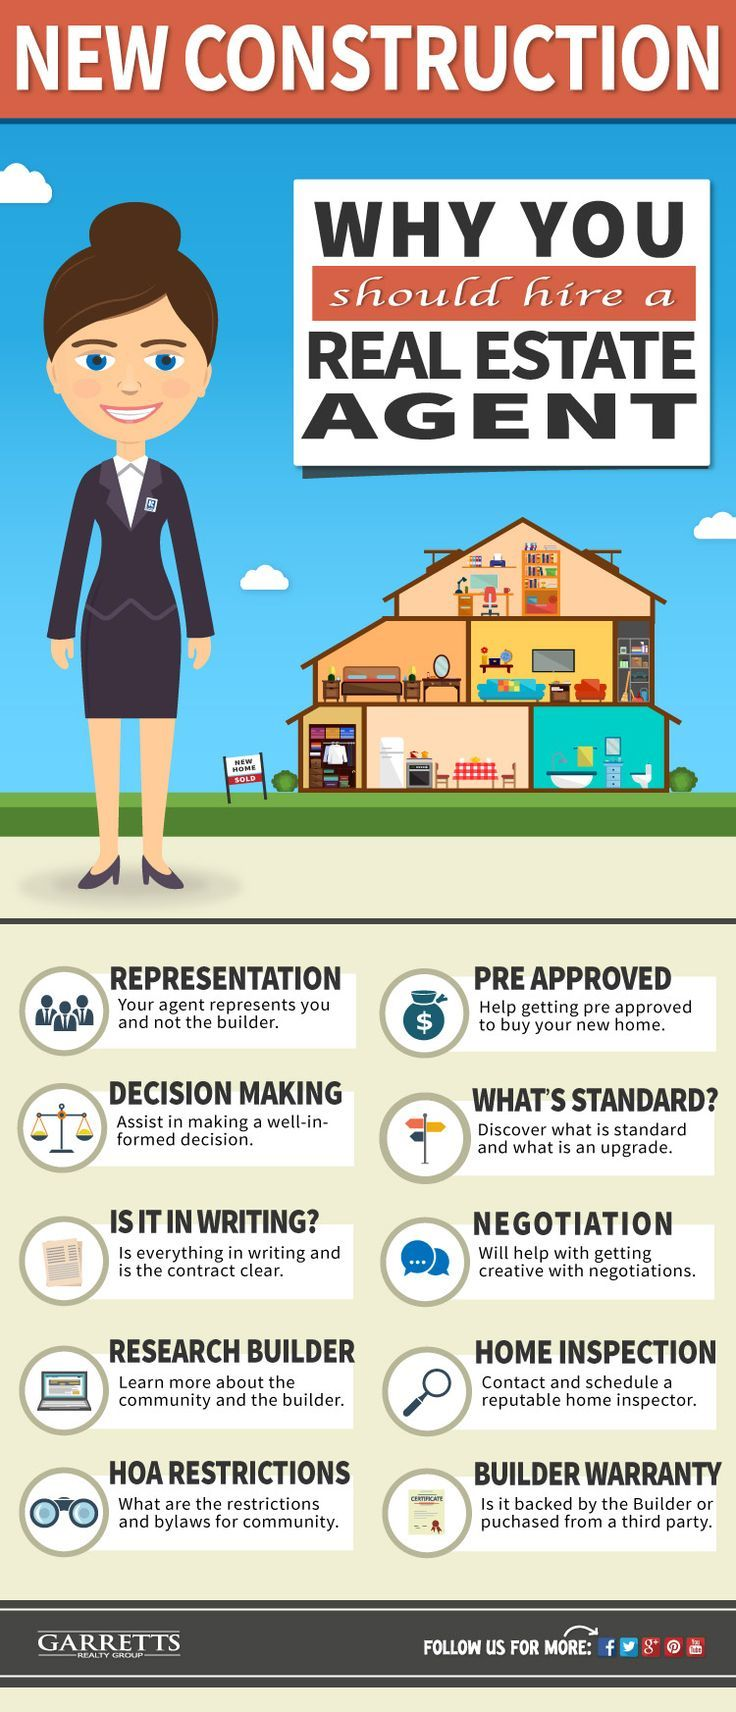 Thinking about building a new home? Learn why it may be in